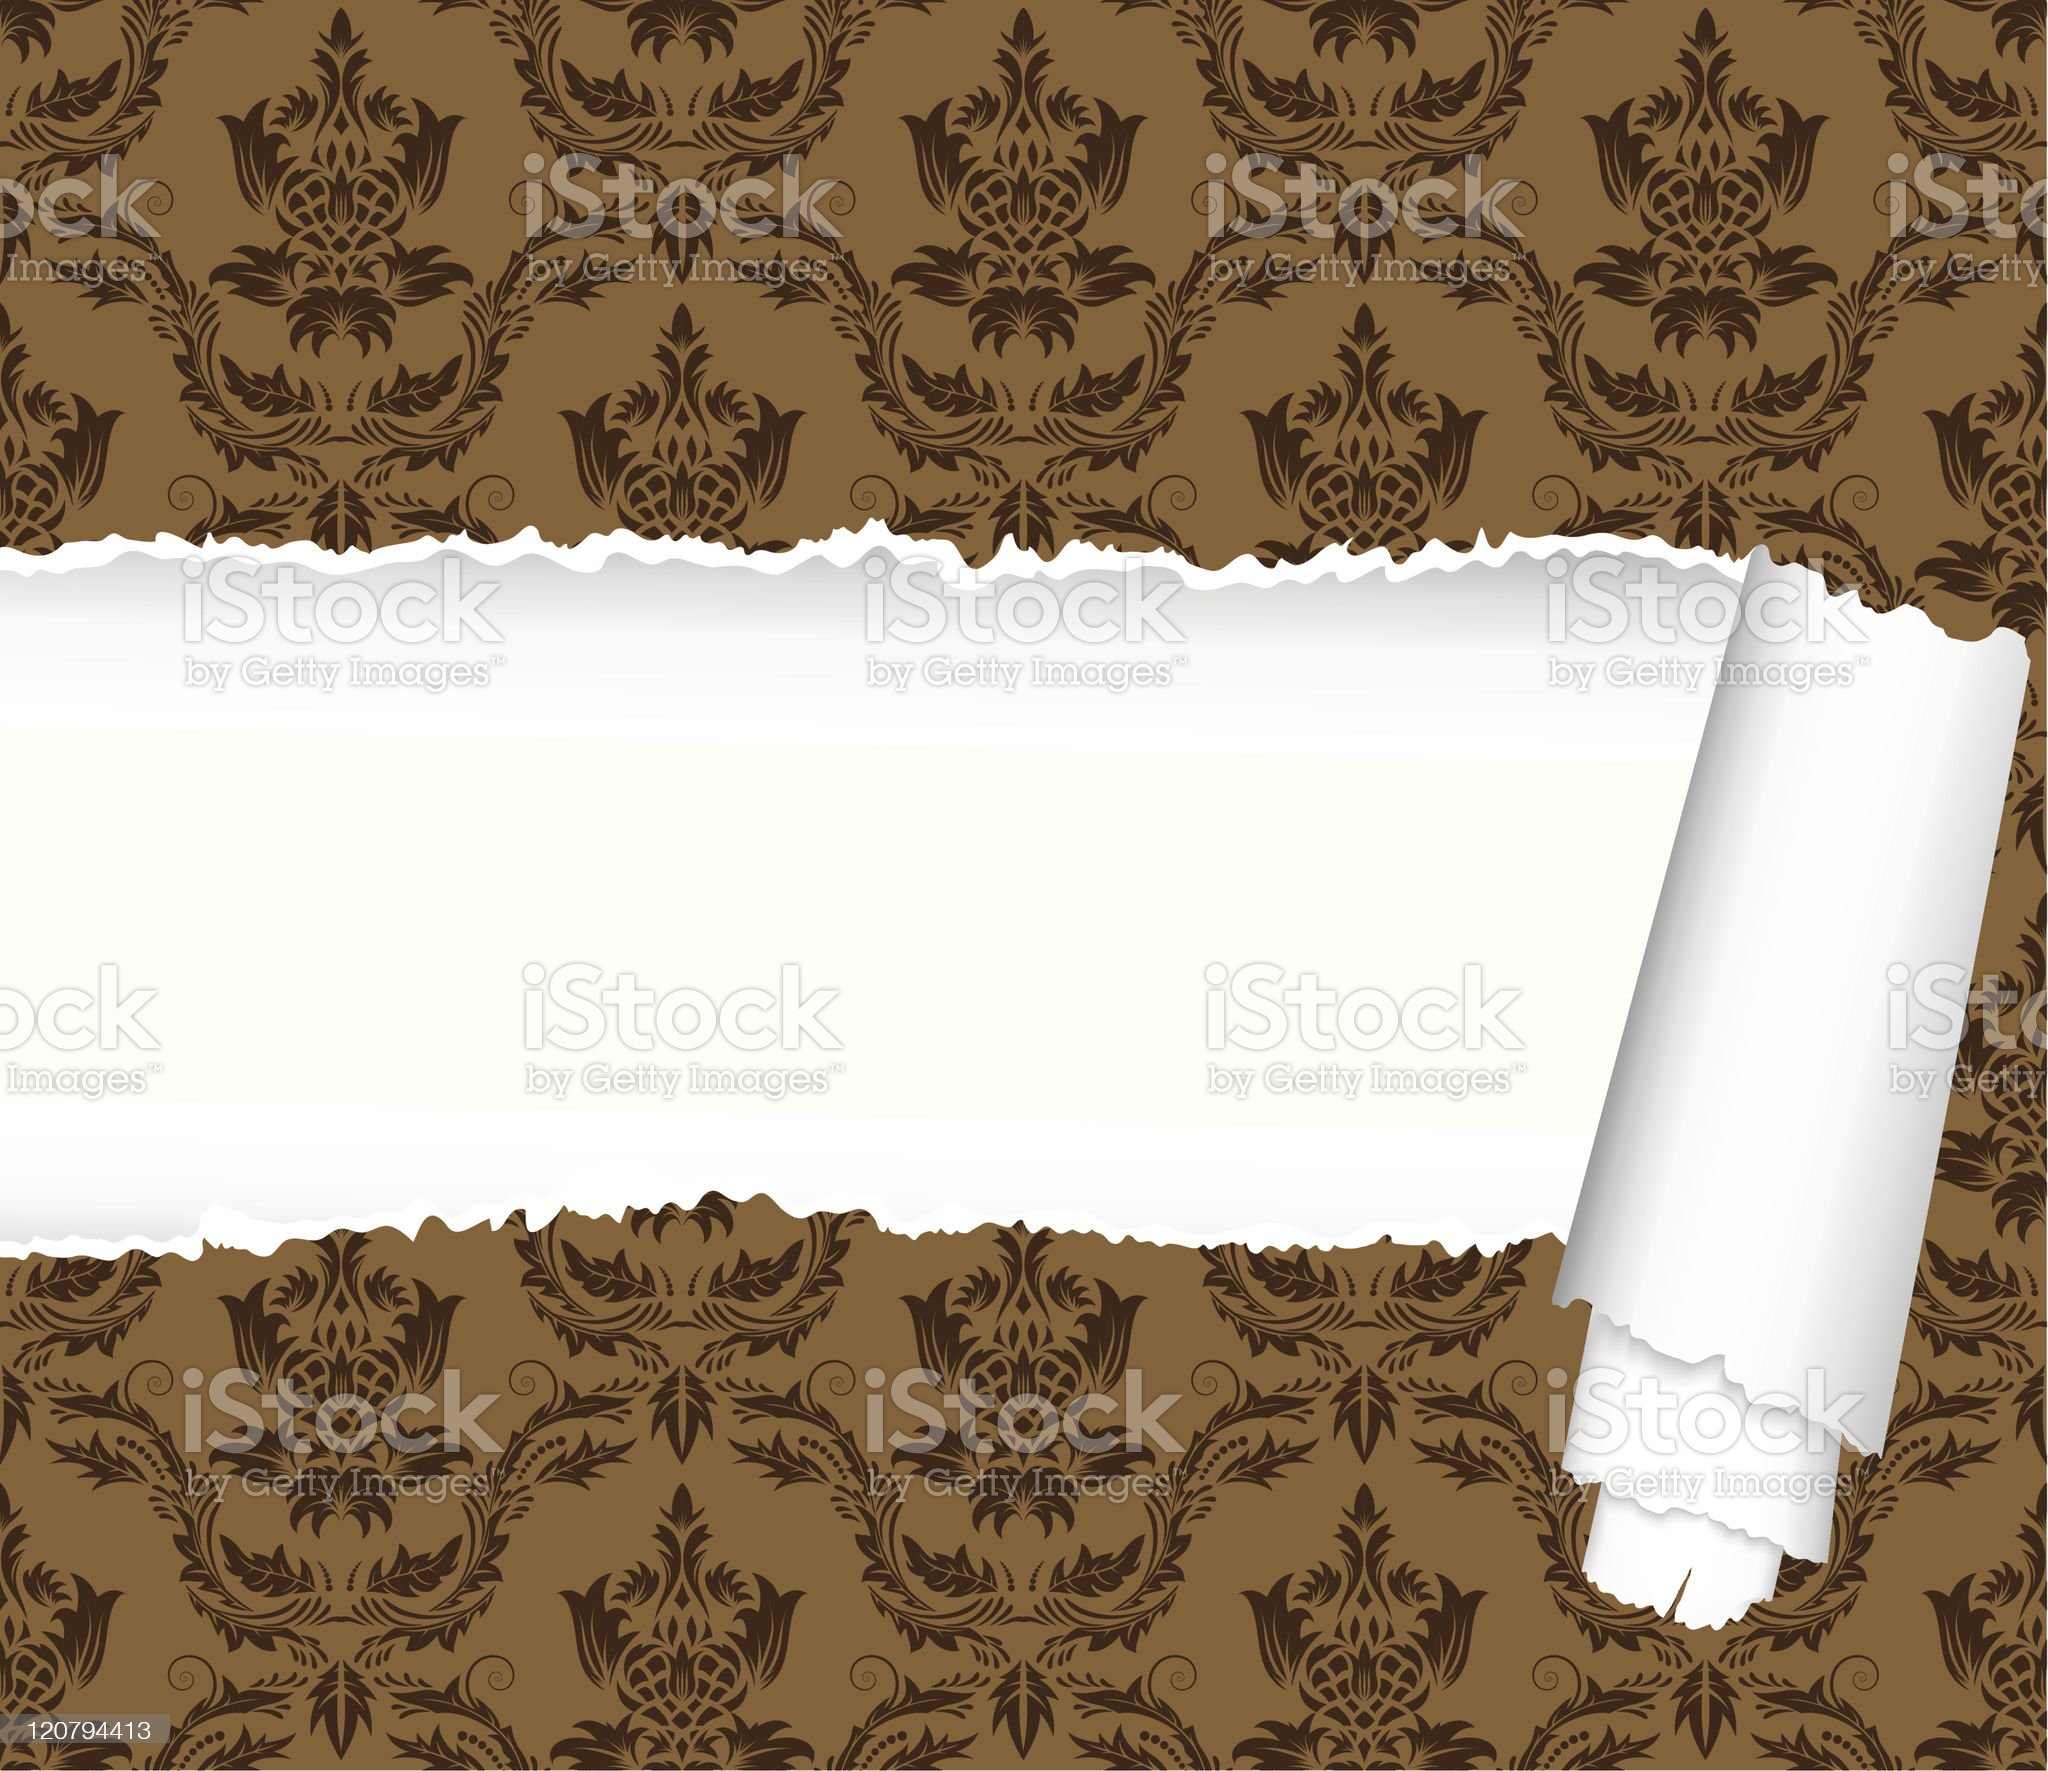 seamless damask pattern with ripped copy-space royalty-free stock vector art